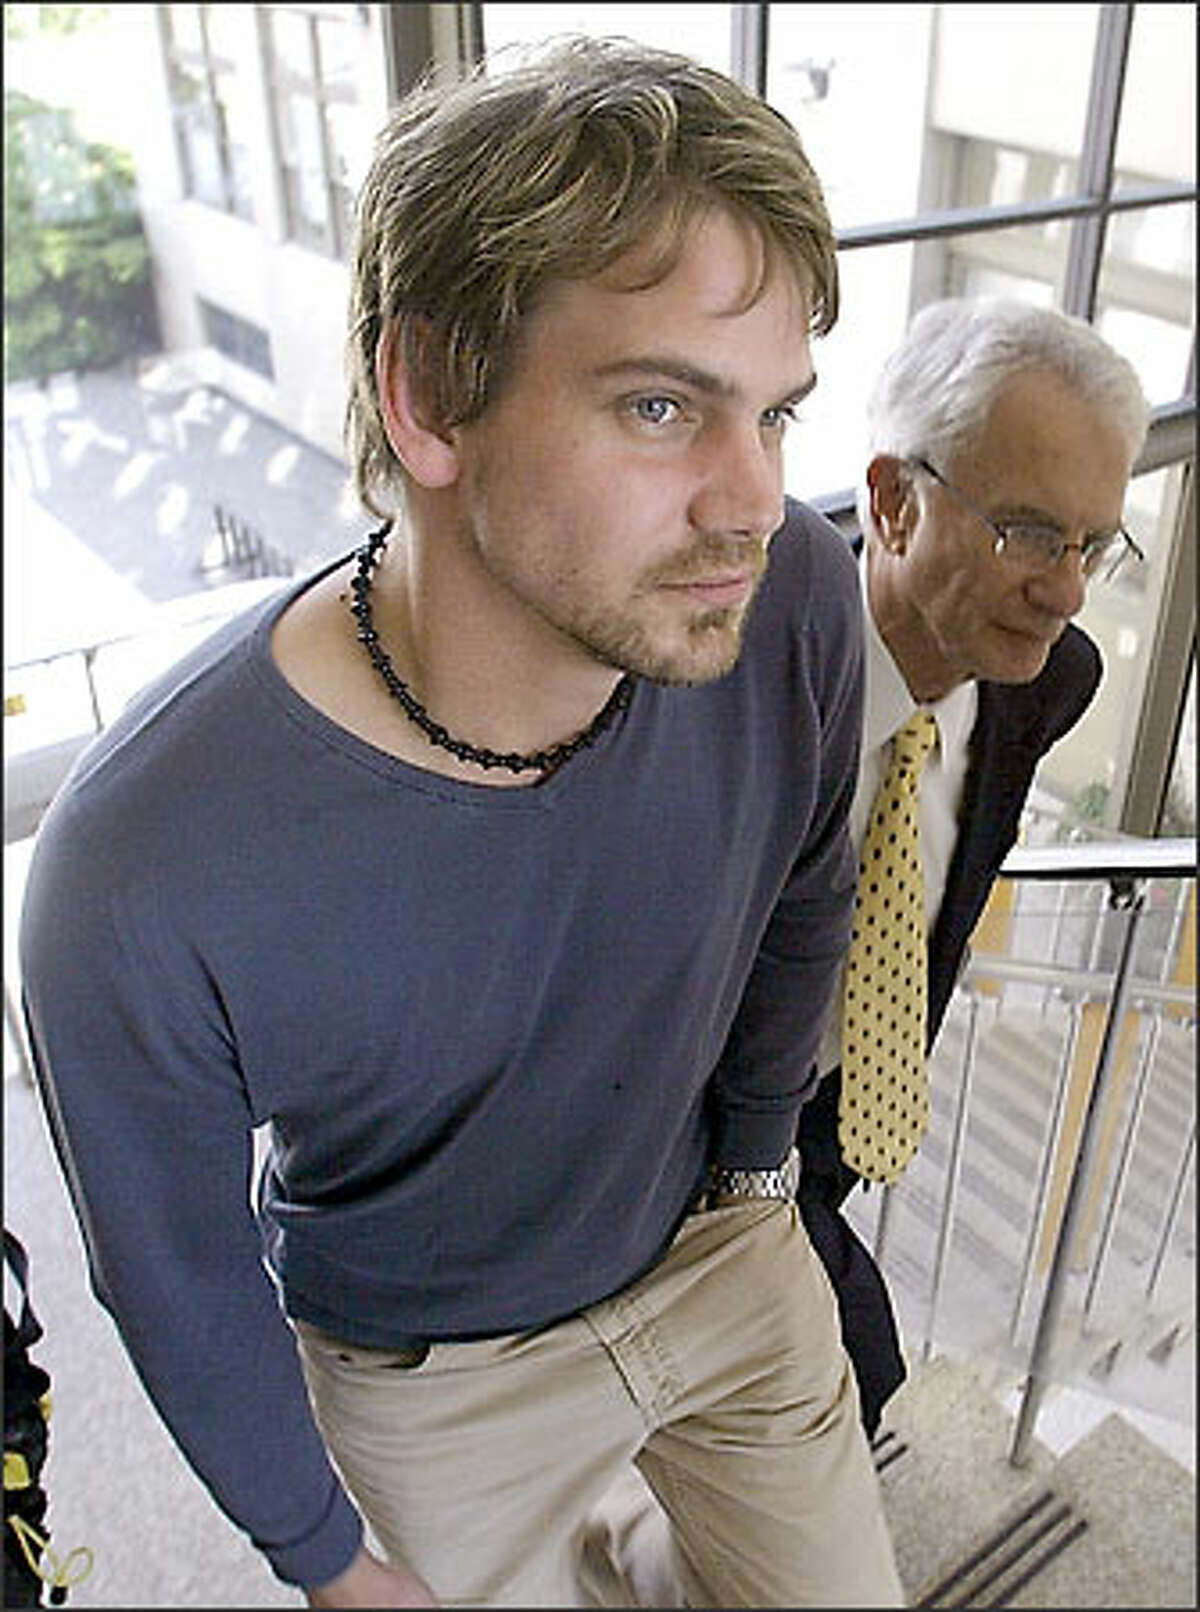 Actor Scott Hamilton Bairstow, with his attorney, Mitchell Egers, was arraigned on charges of child rape.